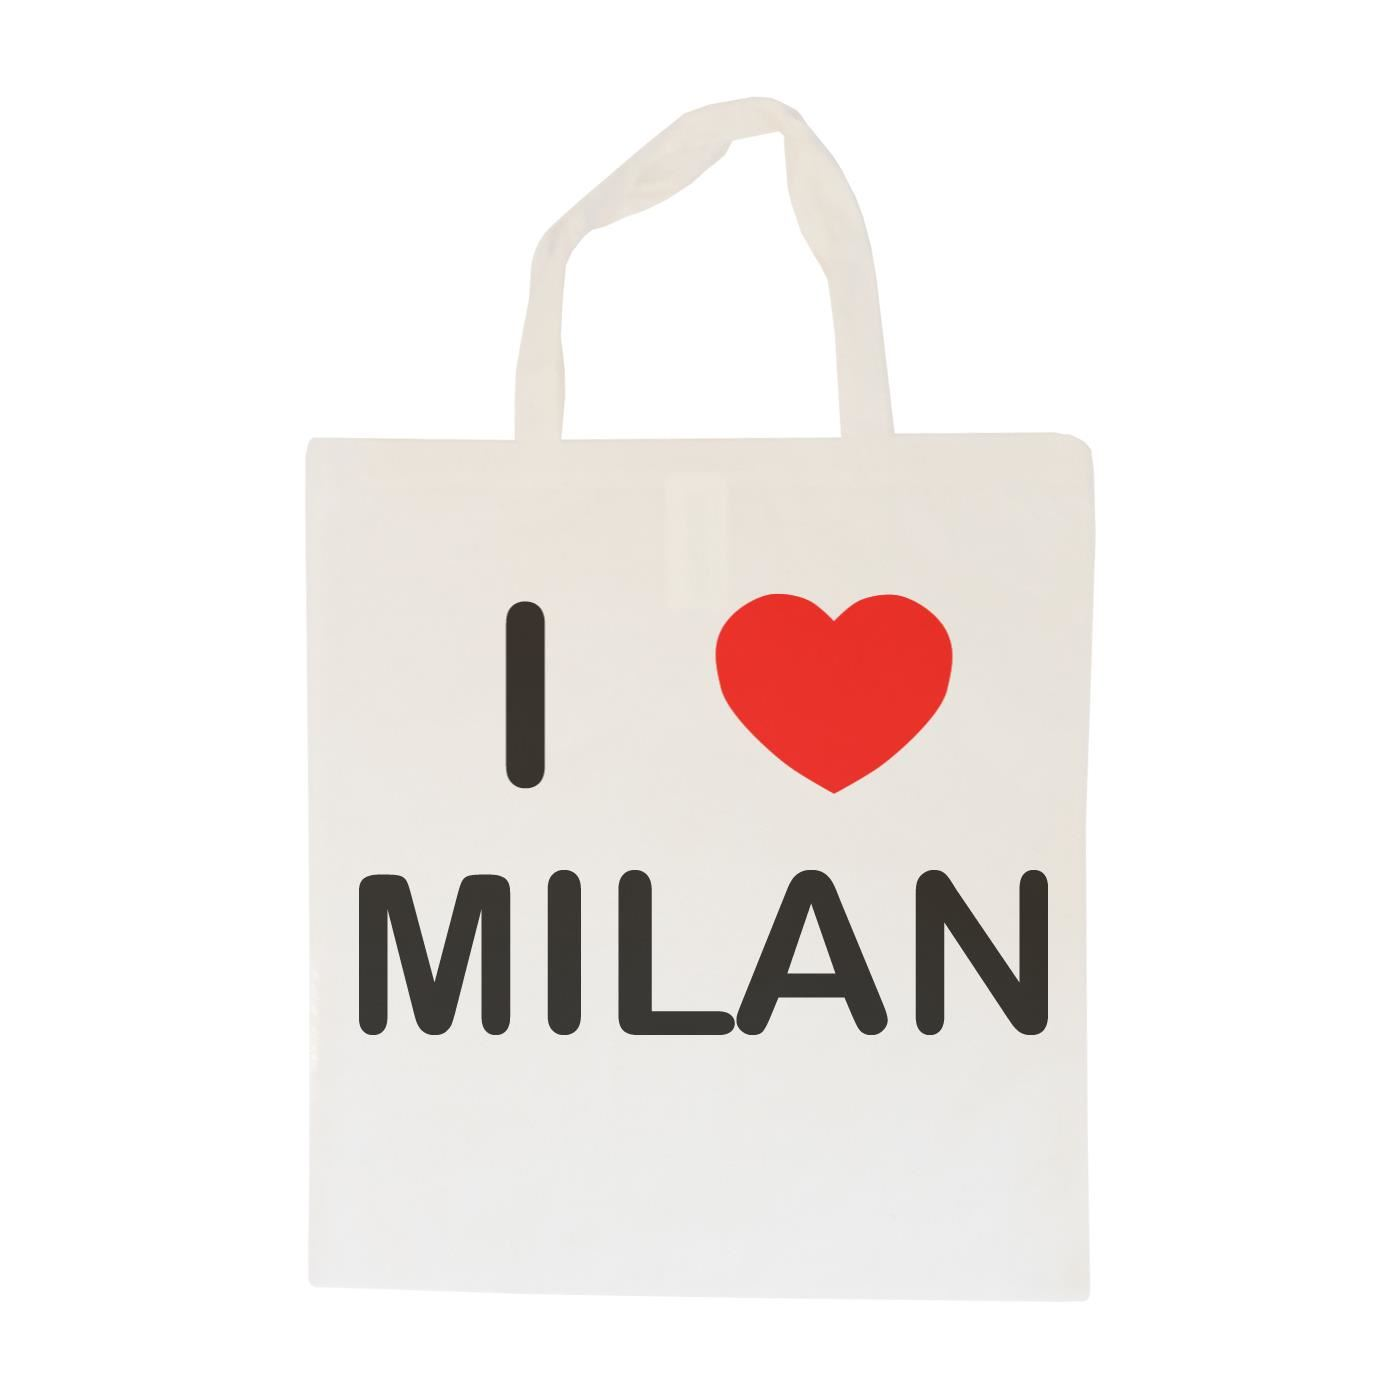 I Love Milan - Cotton Bag | Size choice Tote, Shopper or Sling